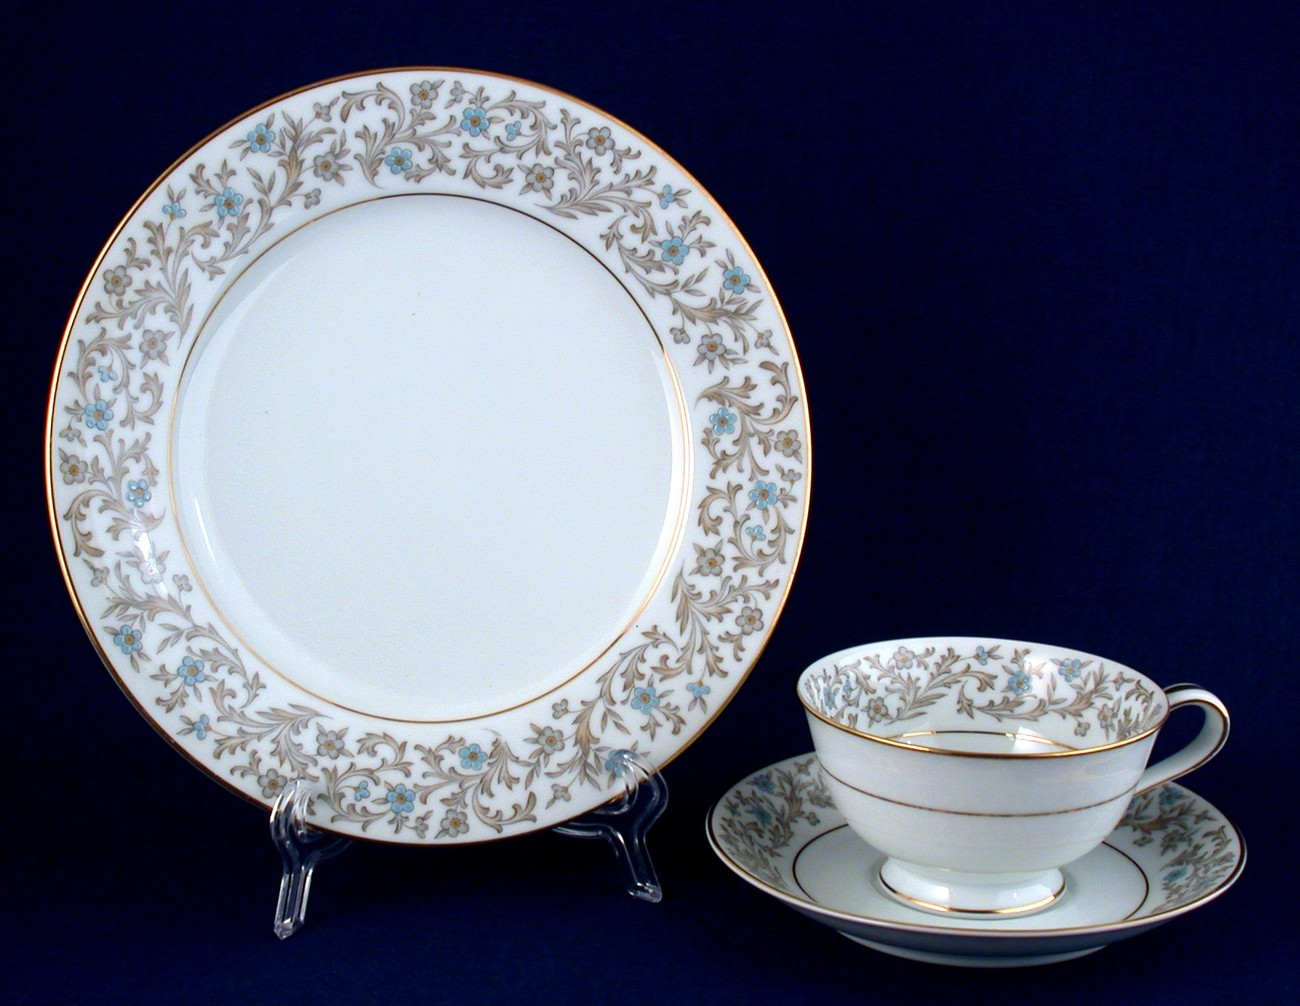 Noritake Dover 3-pc Cup Saucer Salad Plate Place Setting 5633 New China Trio